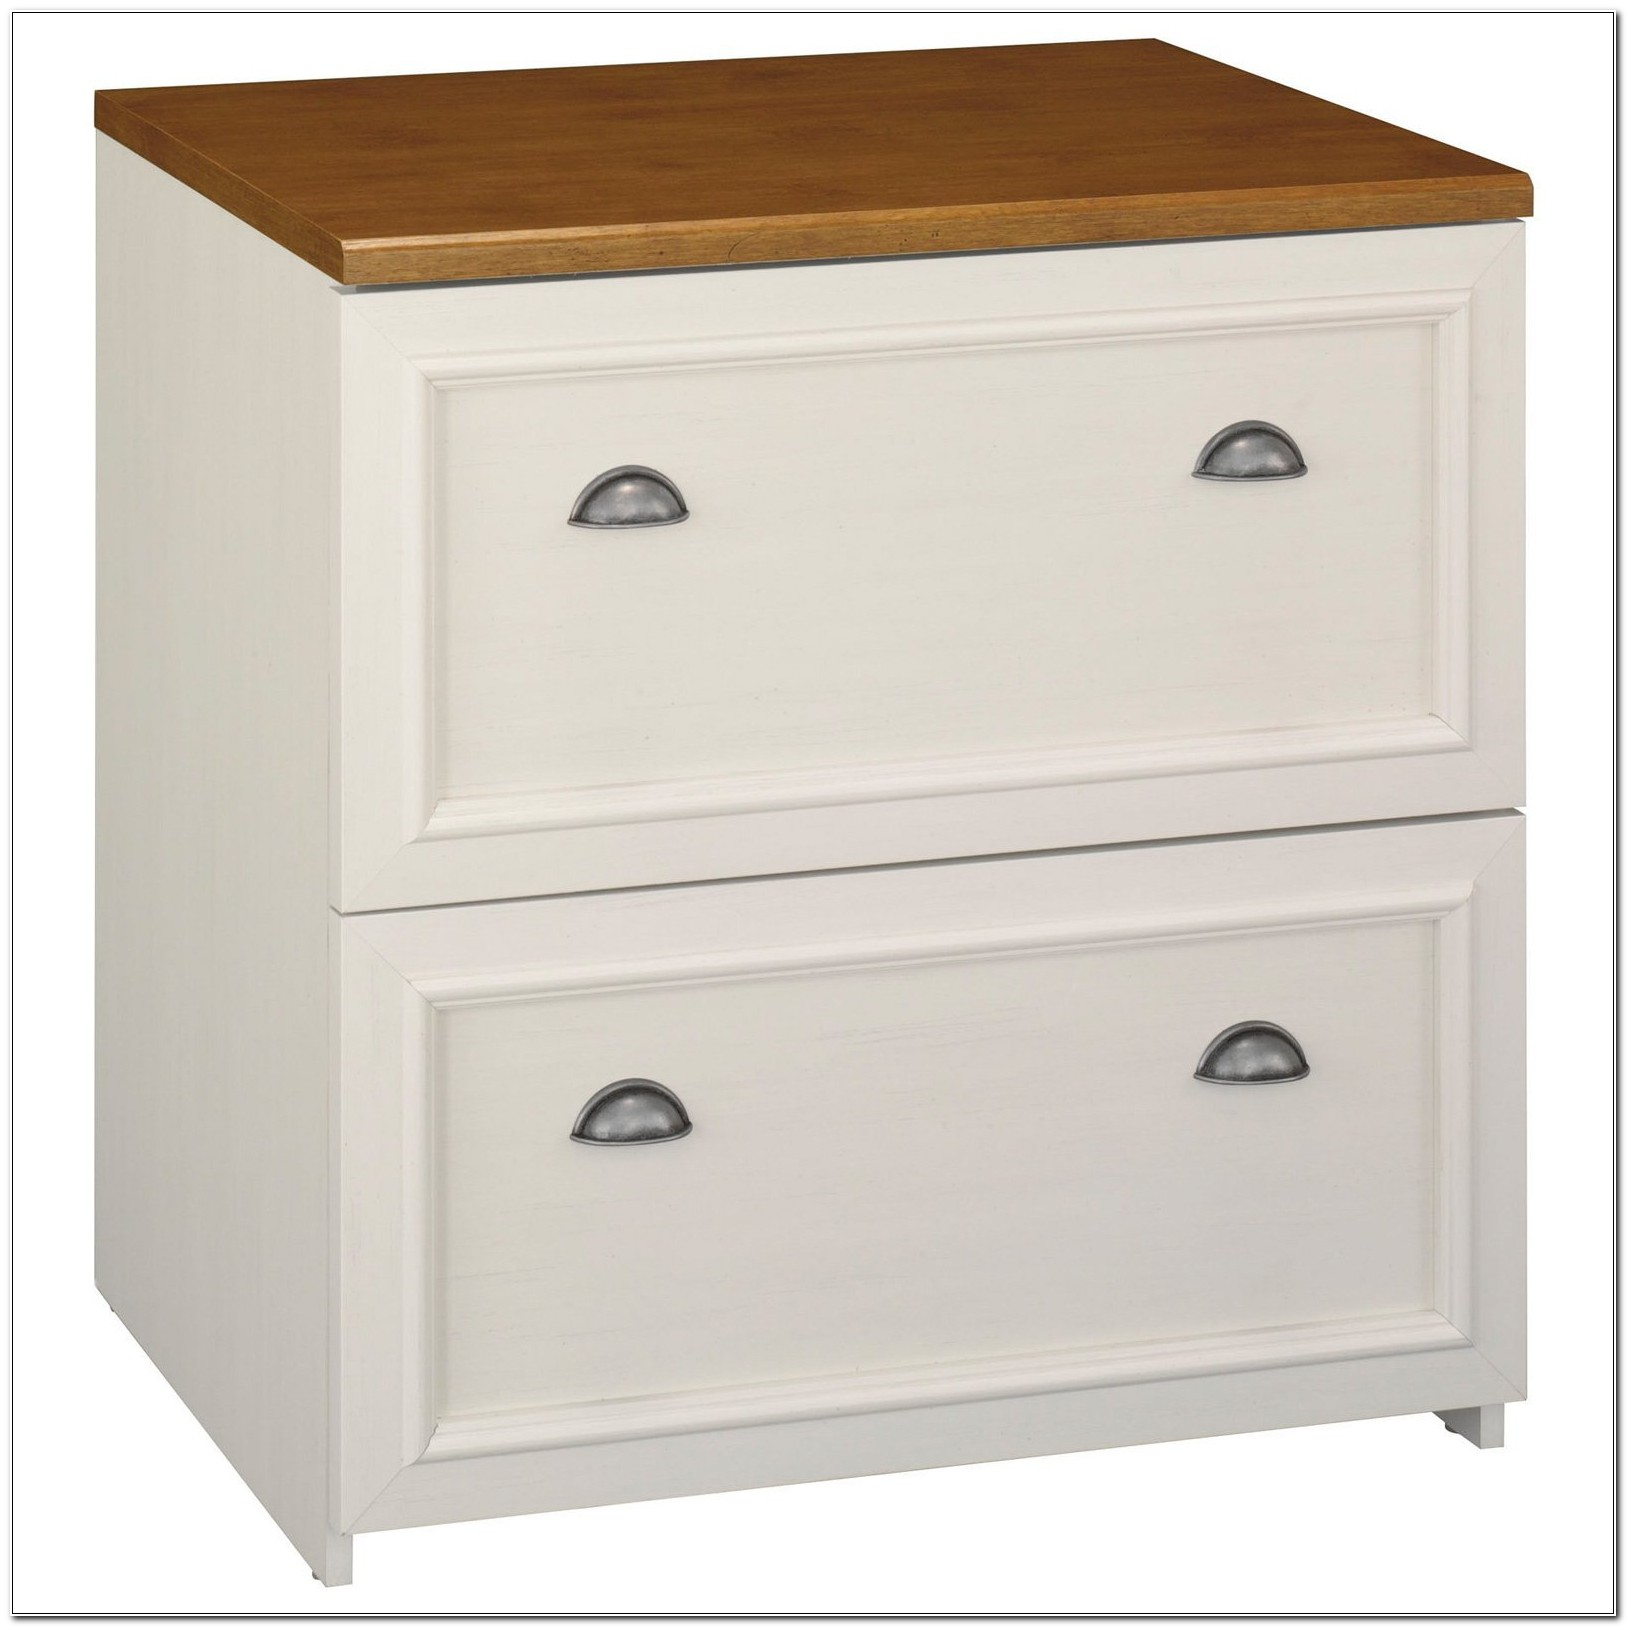 Lateral Filing Cabinets Wood Uk